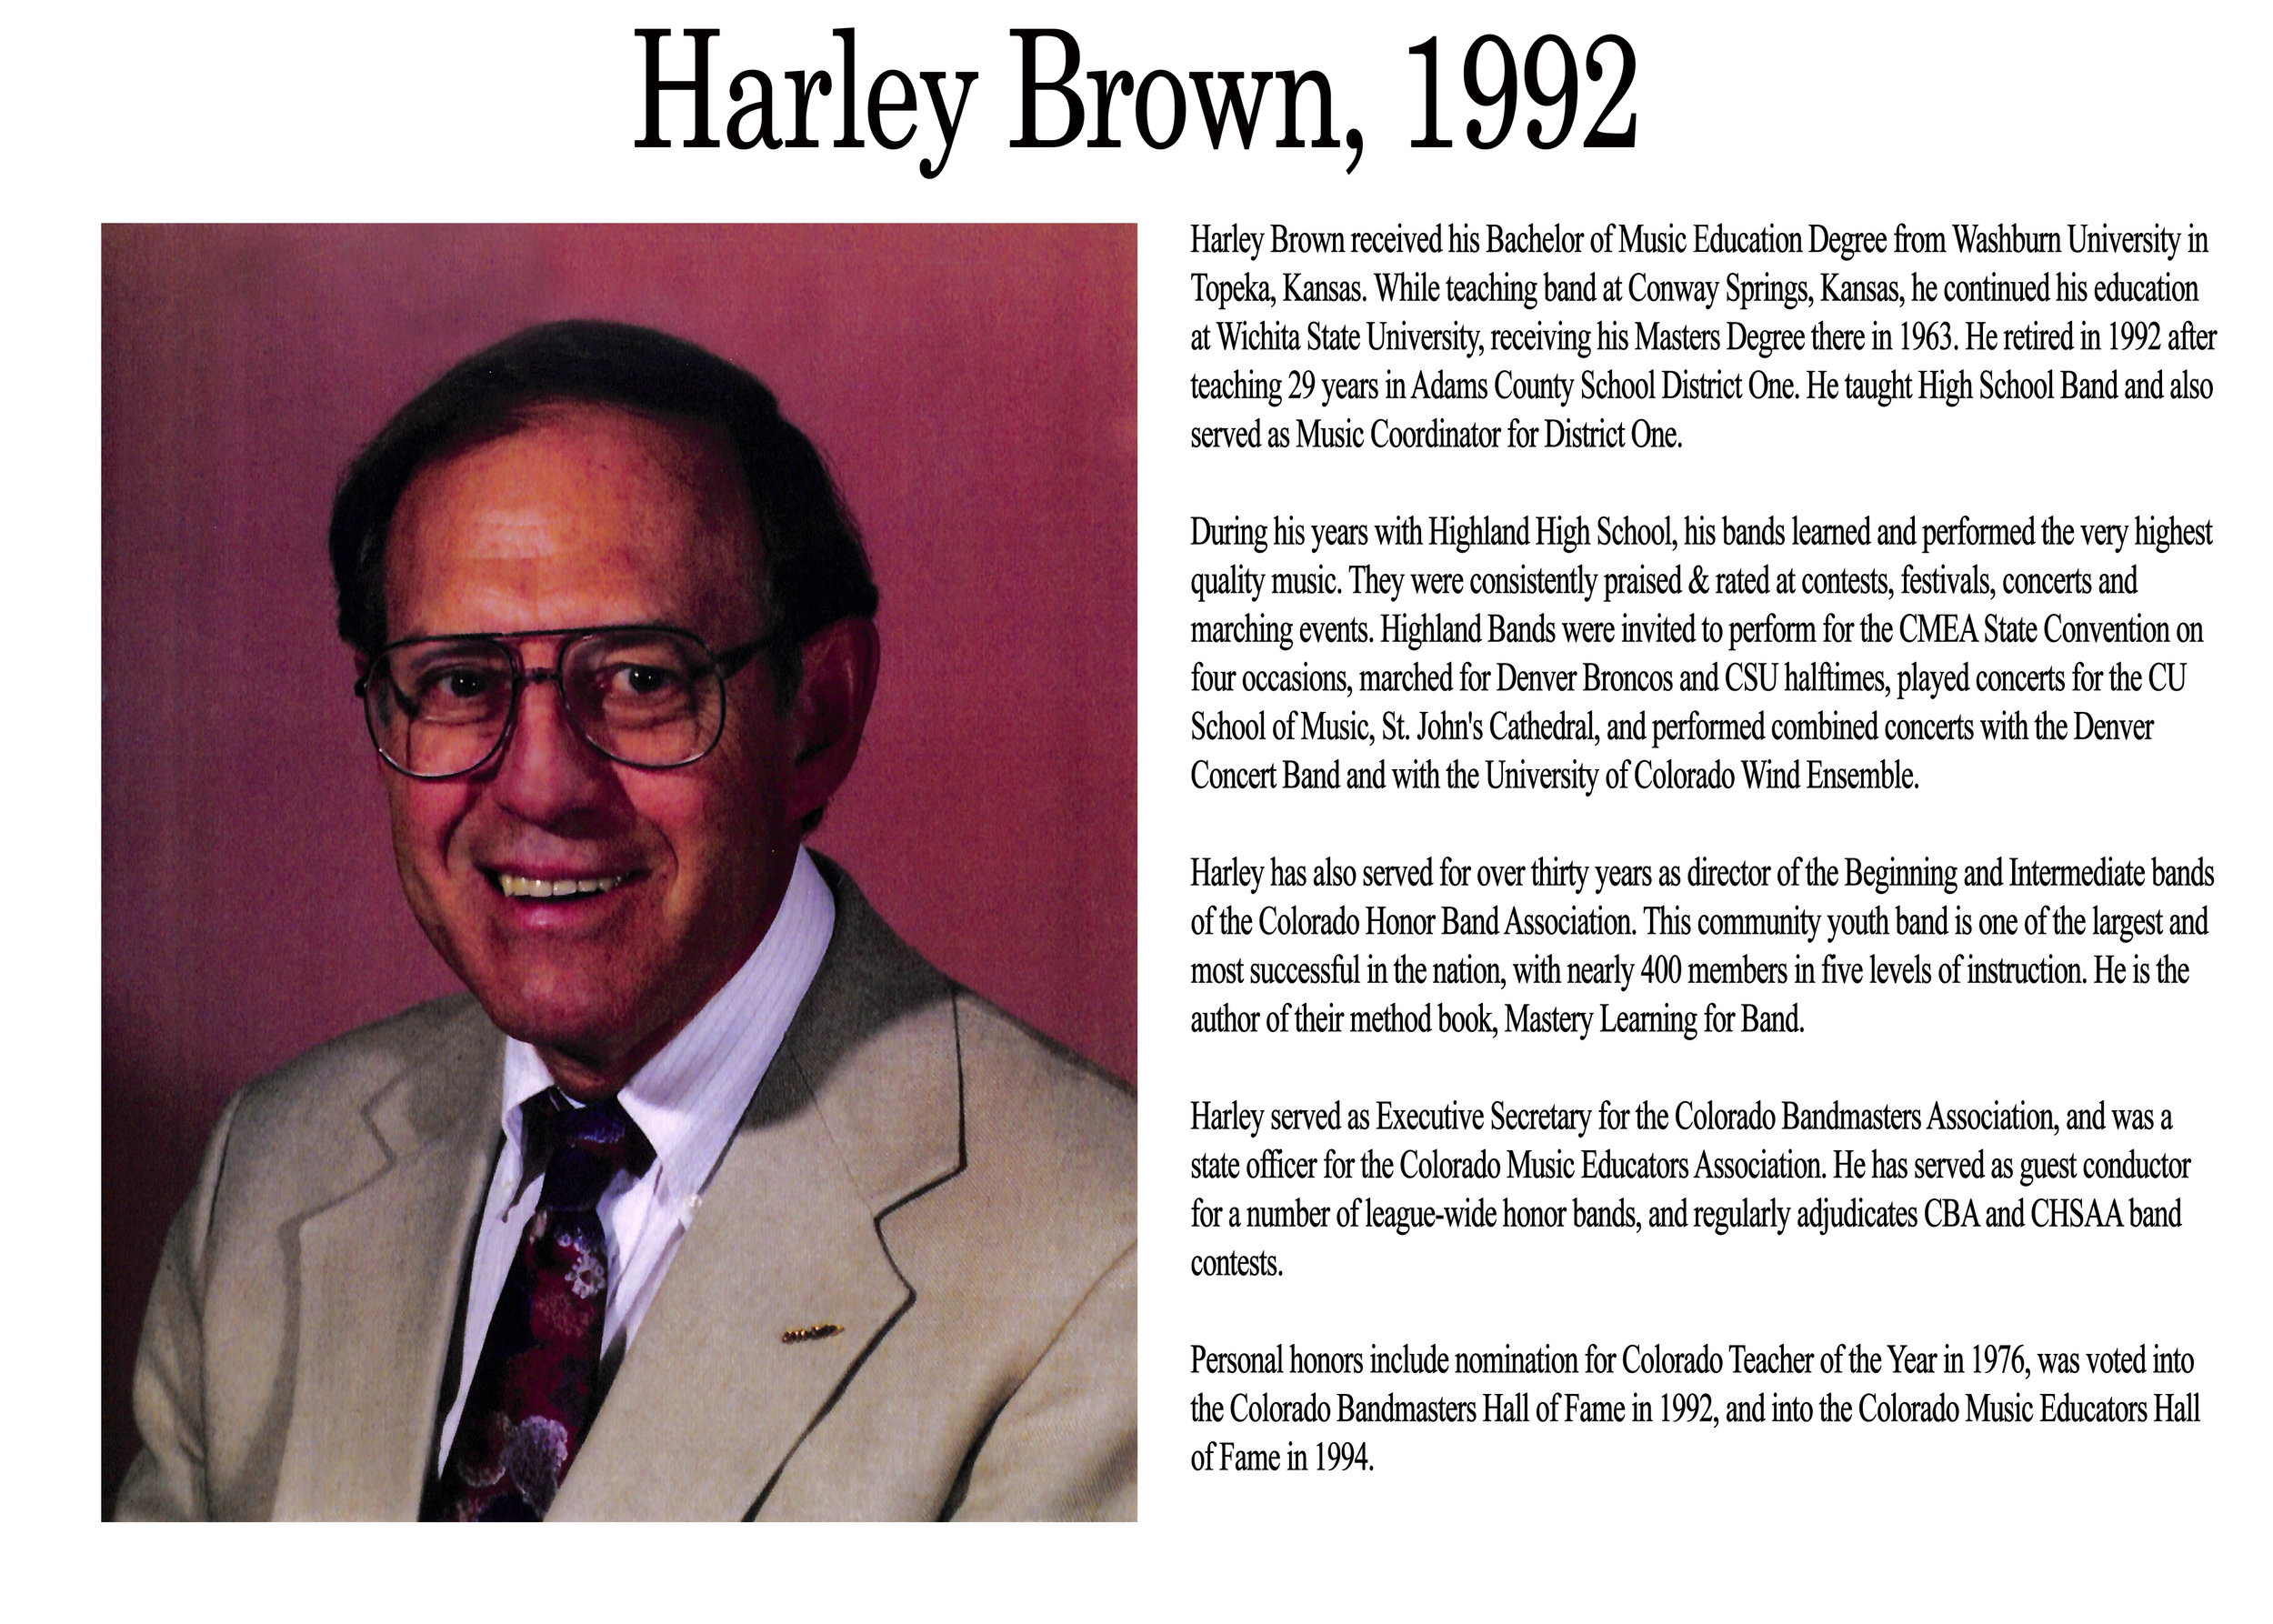 Harley Brown.jpg